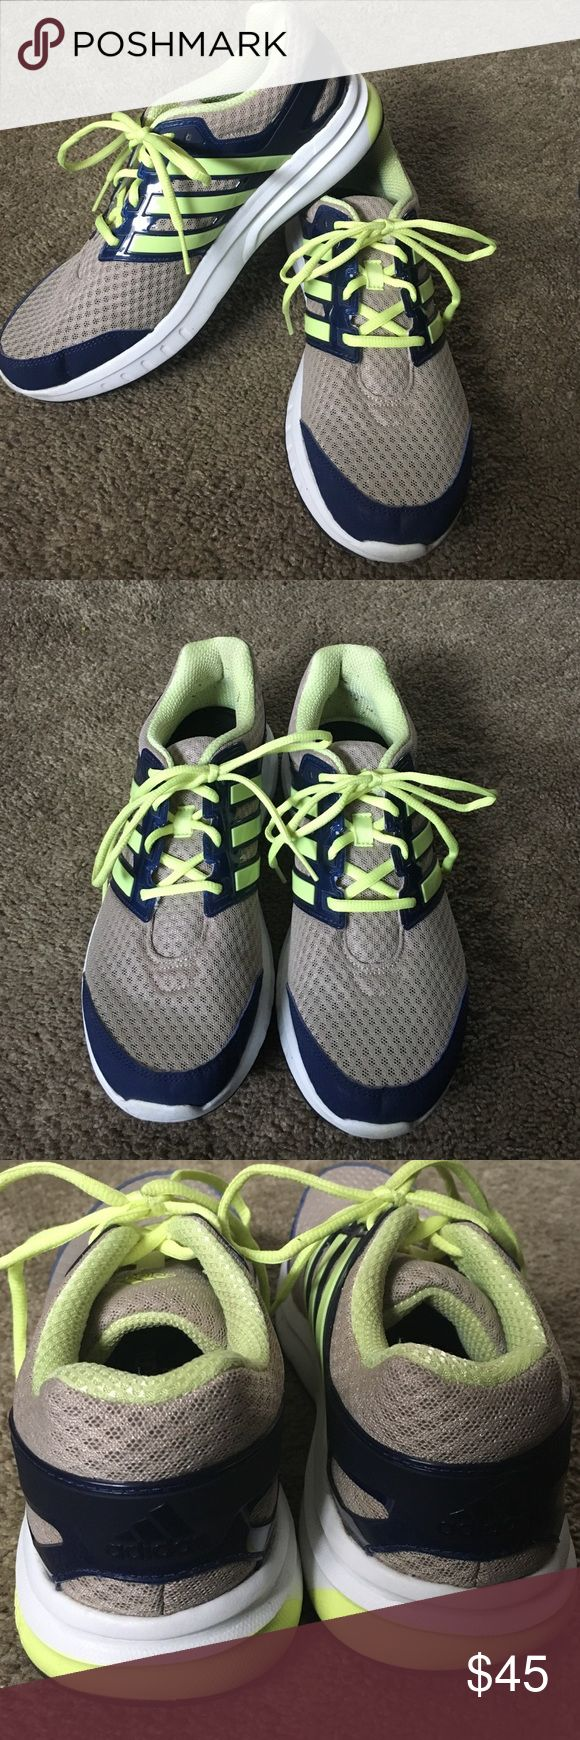 Fun Adidas running shoes Navy, gray and yellow green never worked so well together! New Adidas running shoes that feel like you're literally walking on clouds ☁️ it's crazy how comfy these feel, as well as how crazy lightweight they are. Only wore once in a gym while coaching so brand new! I accept REASONABLE offers through the offer button. Adidas Shoes Sneakers